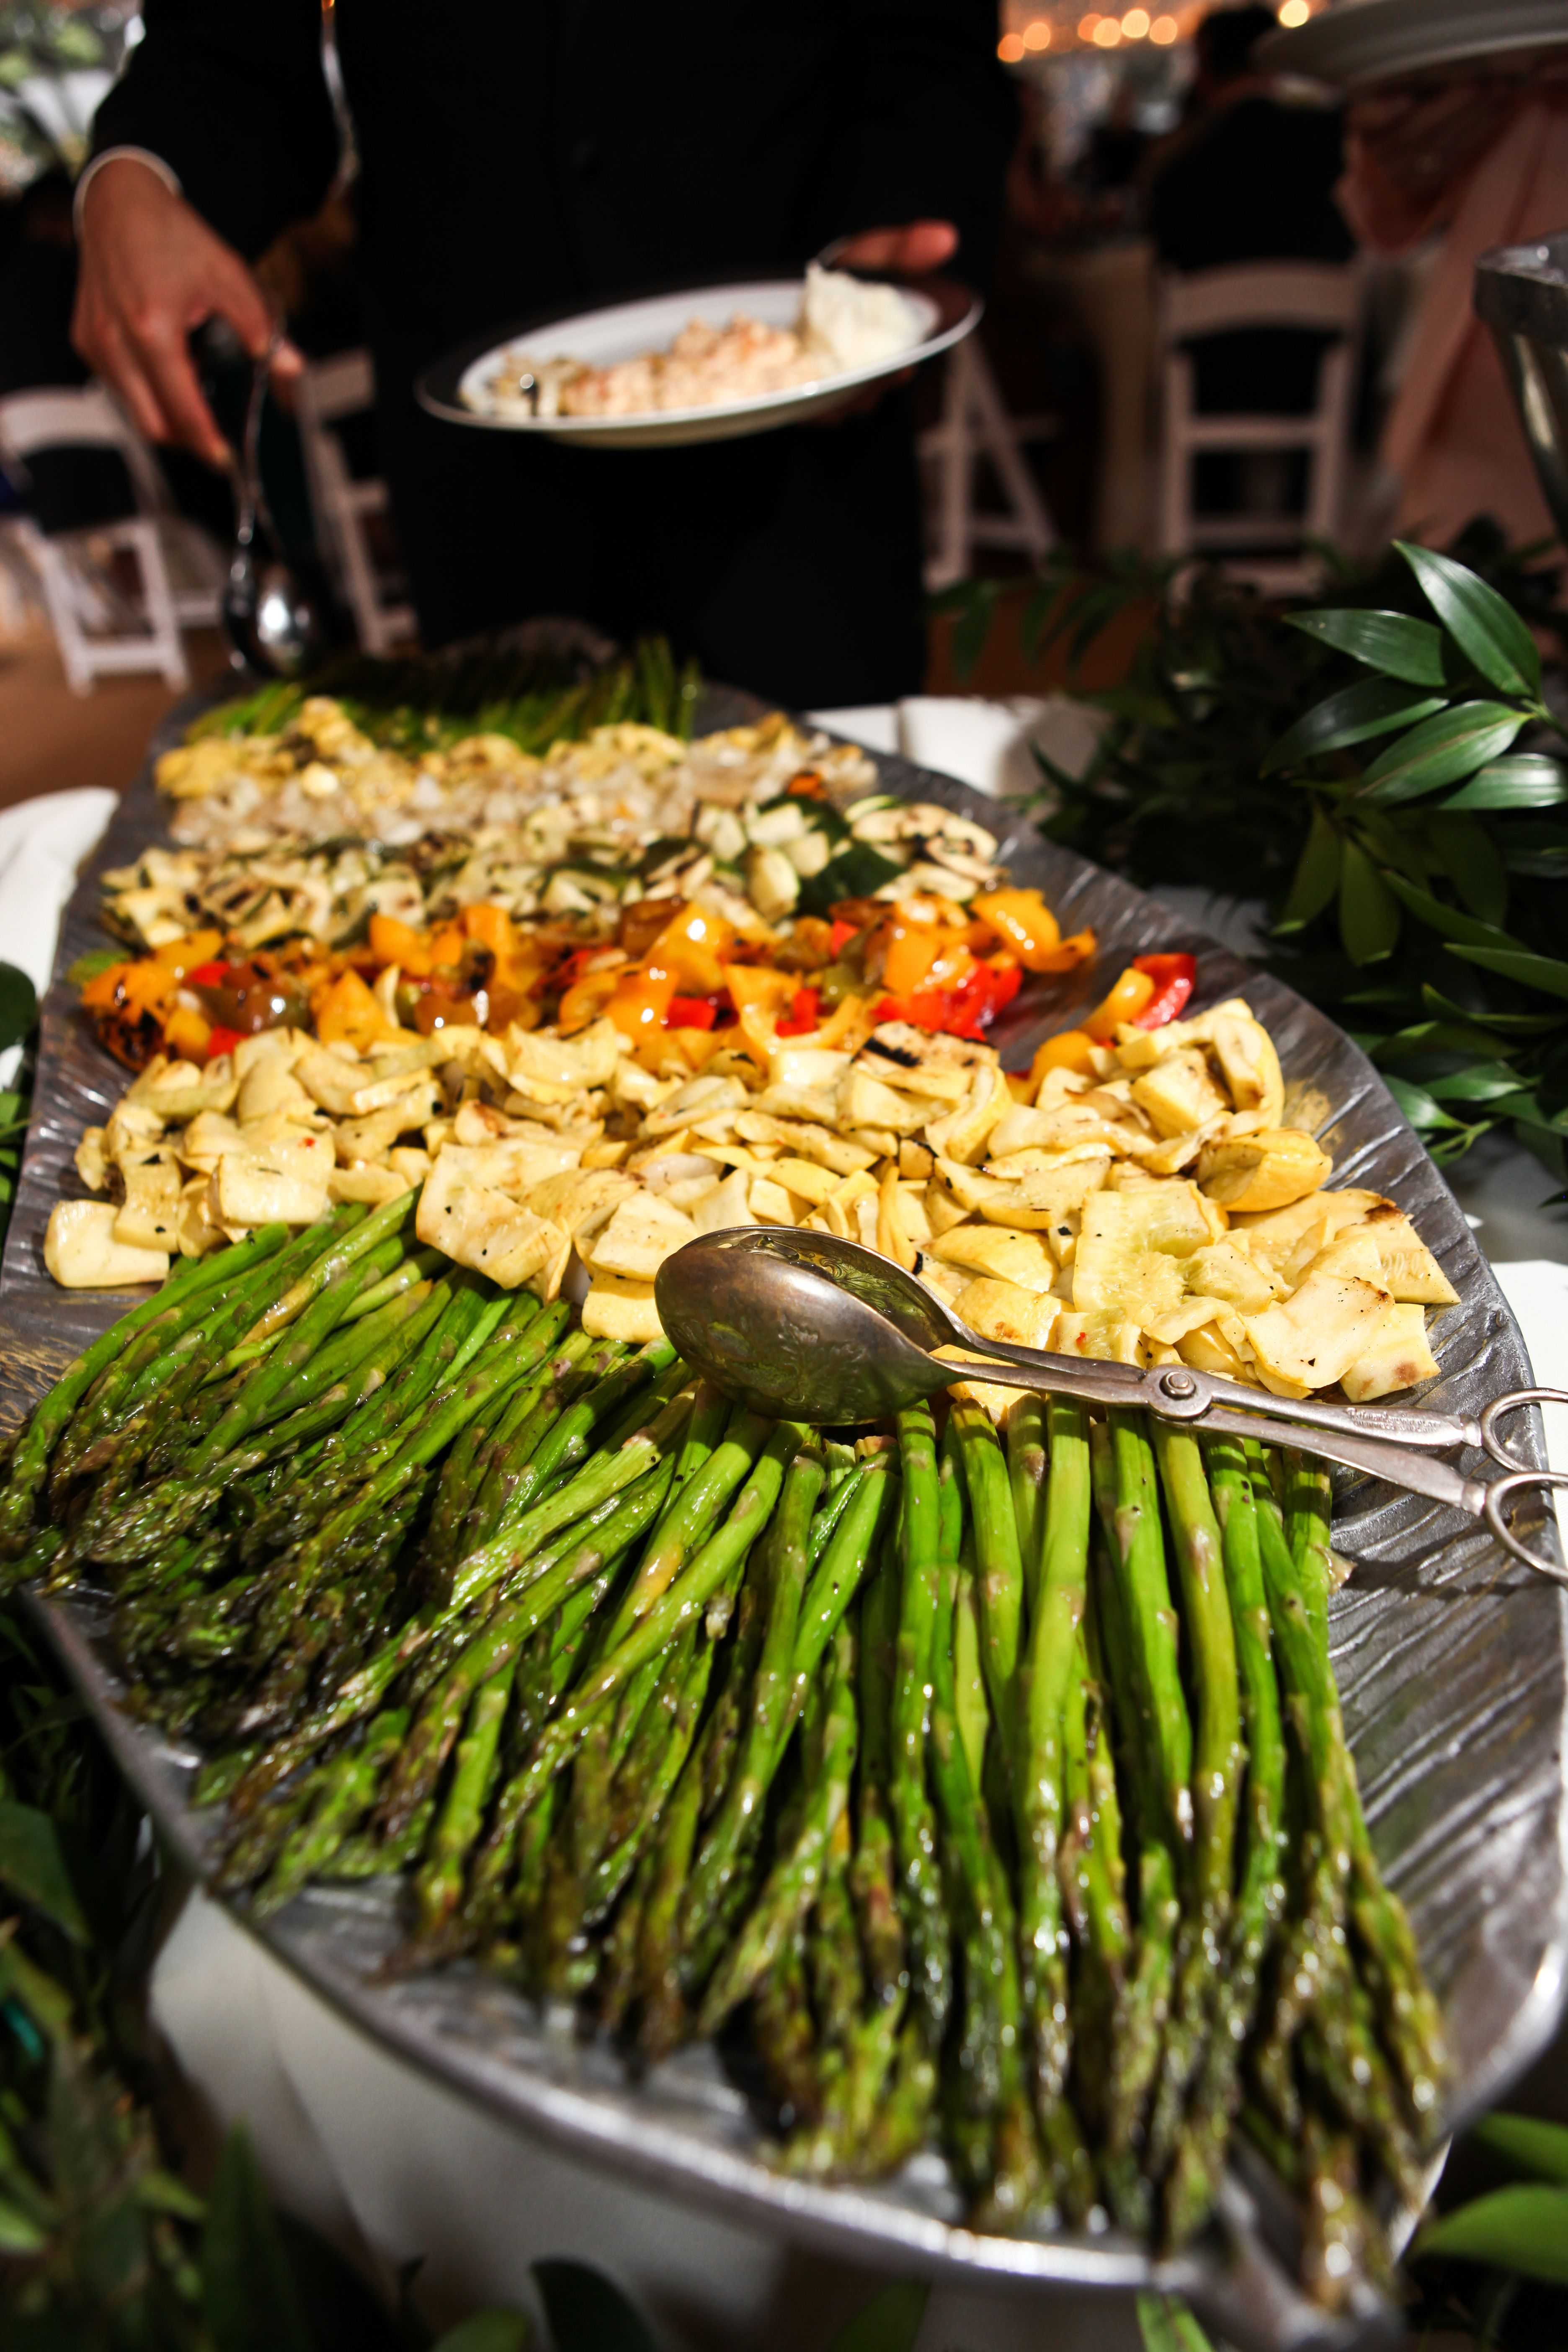 Grilled And Roasted Vegetables Are Displayed In Sections So Guests